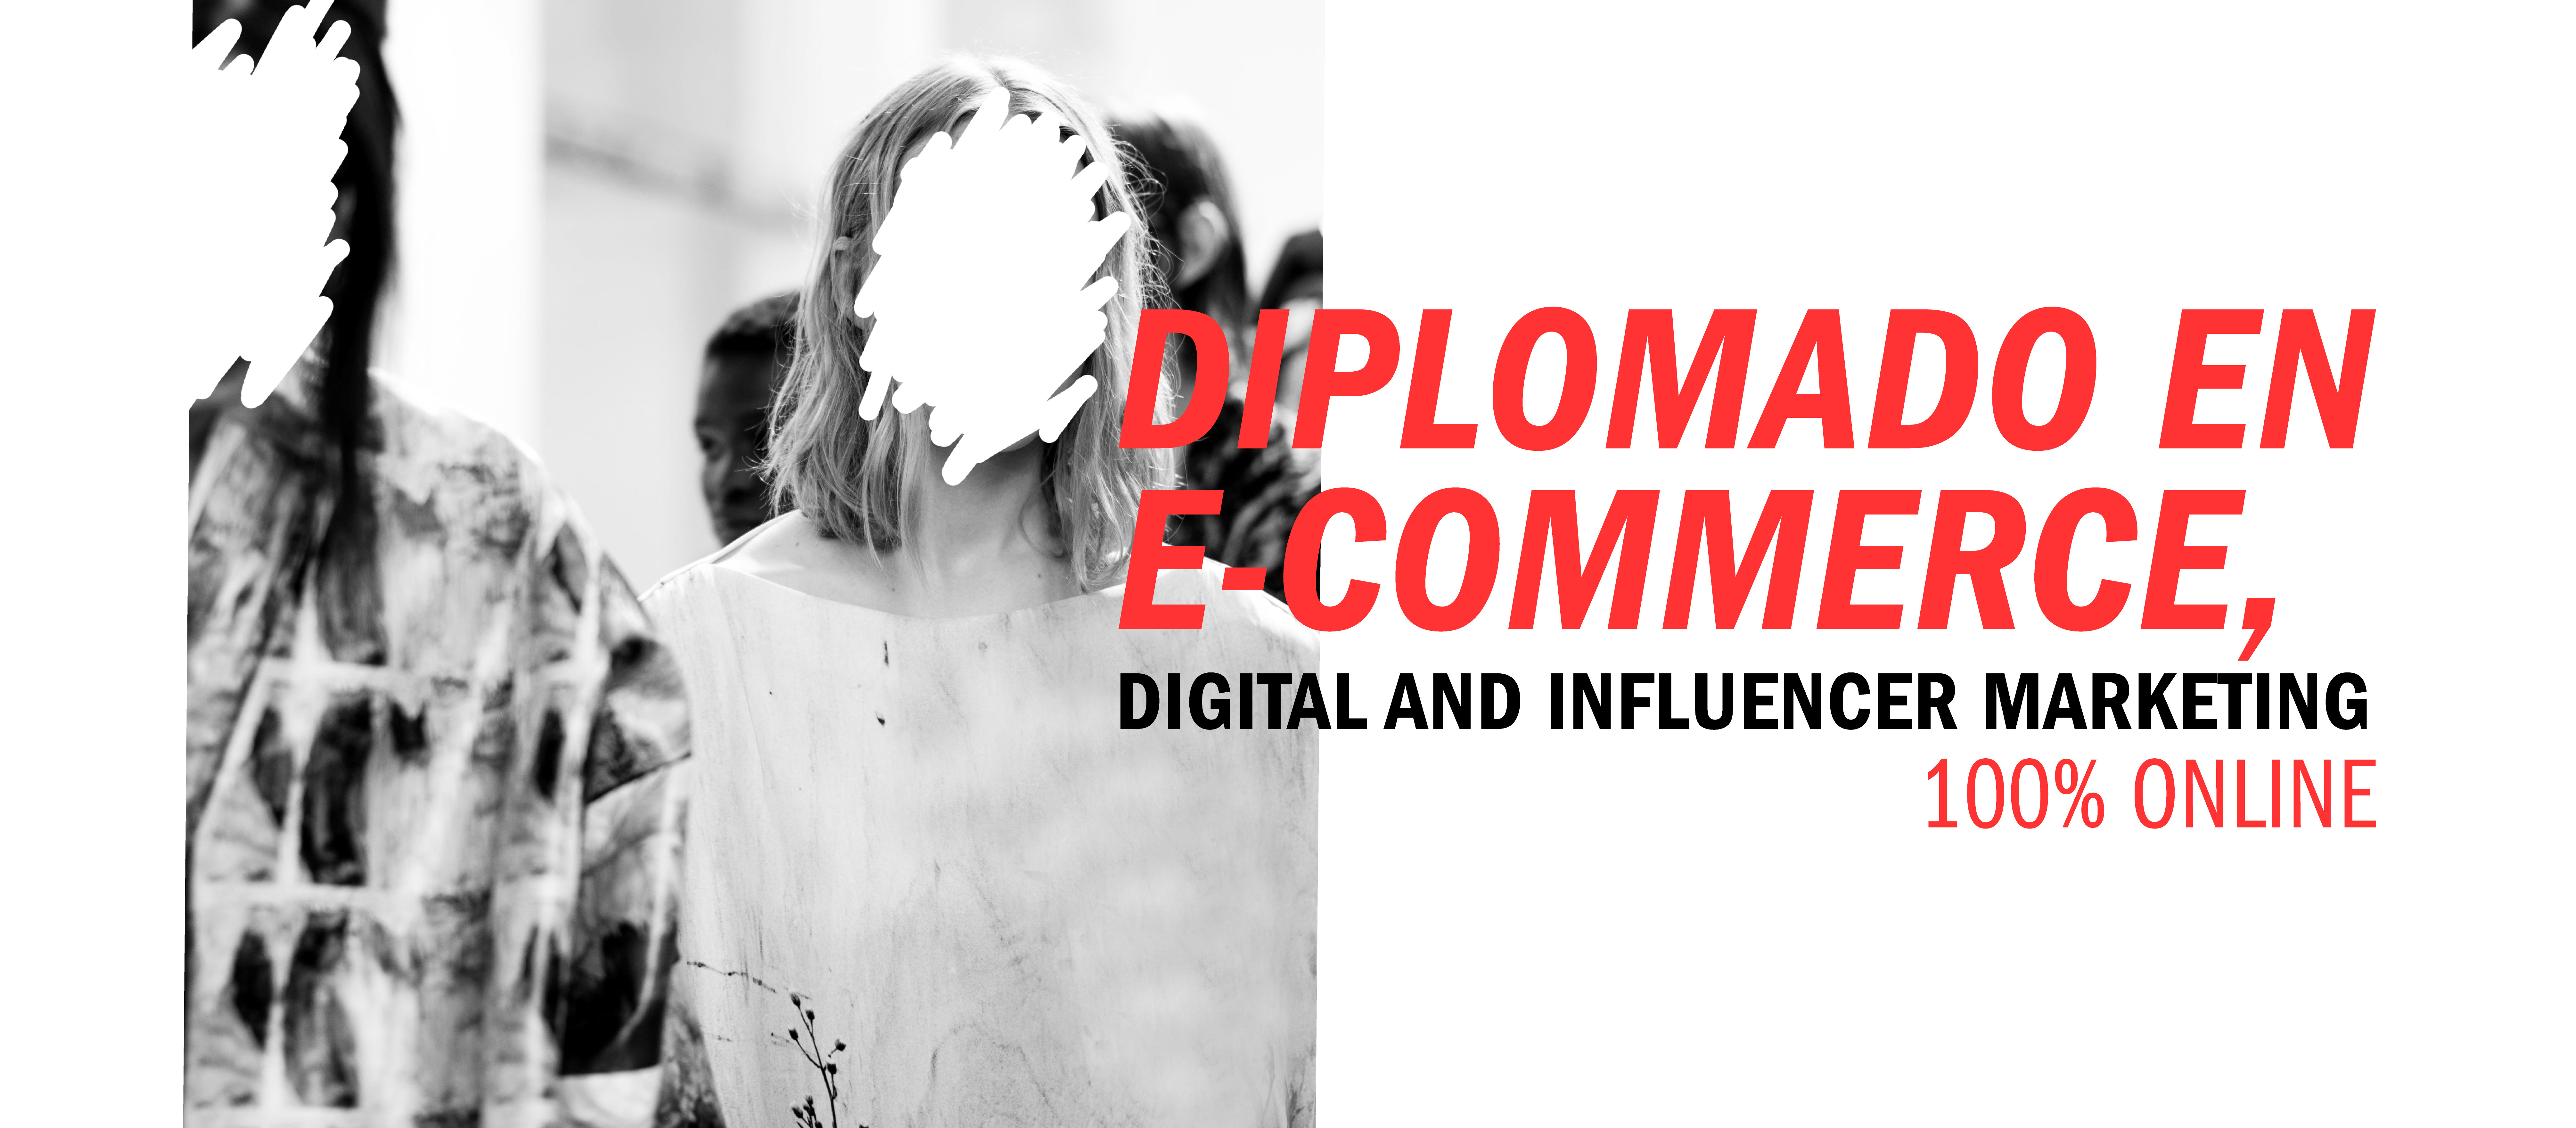 Inicio programa On-line Diplomado en E-commerce, digital and influencer marketing.